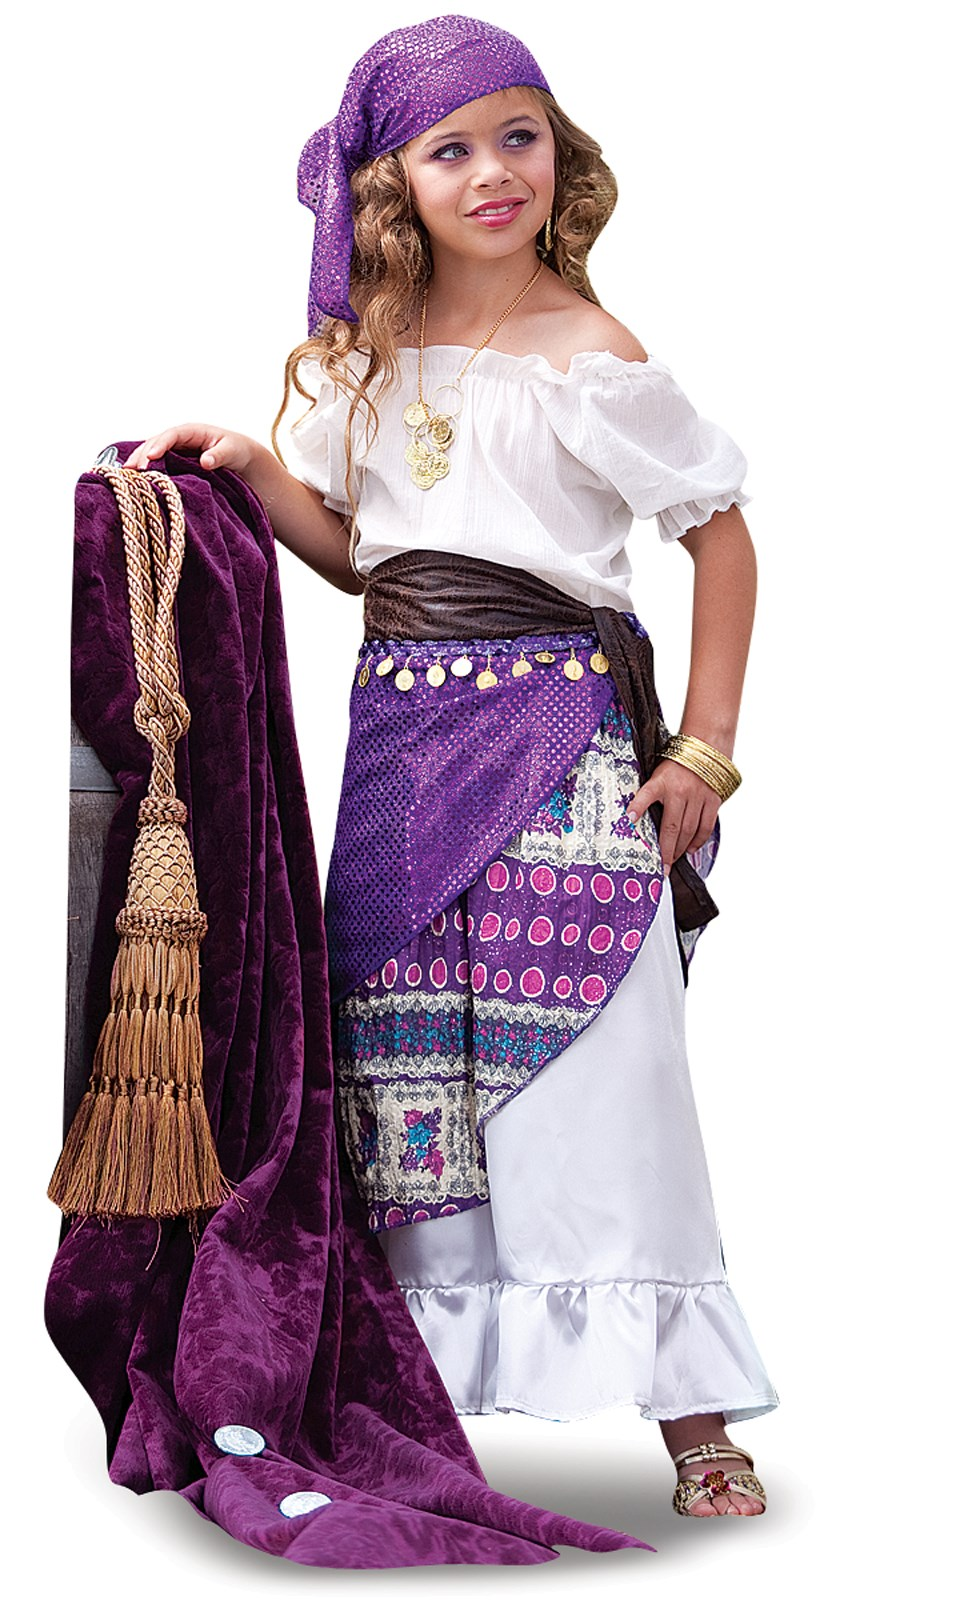 Gypsy child costume for Homemade halloween costumes for 10 year olds